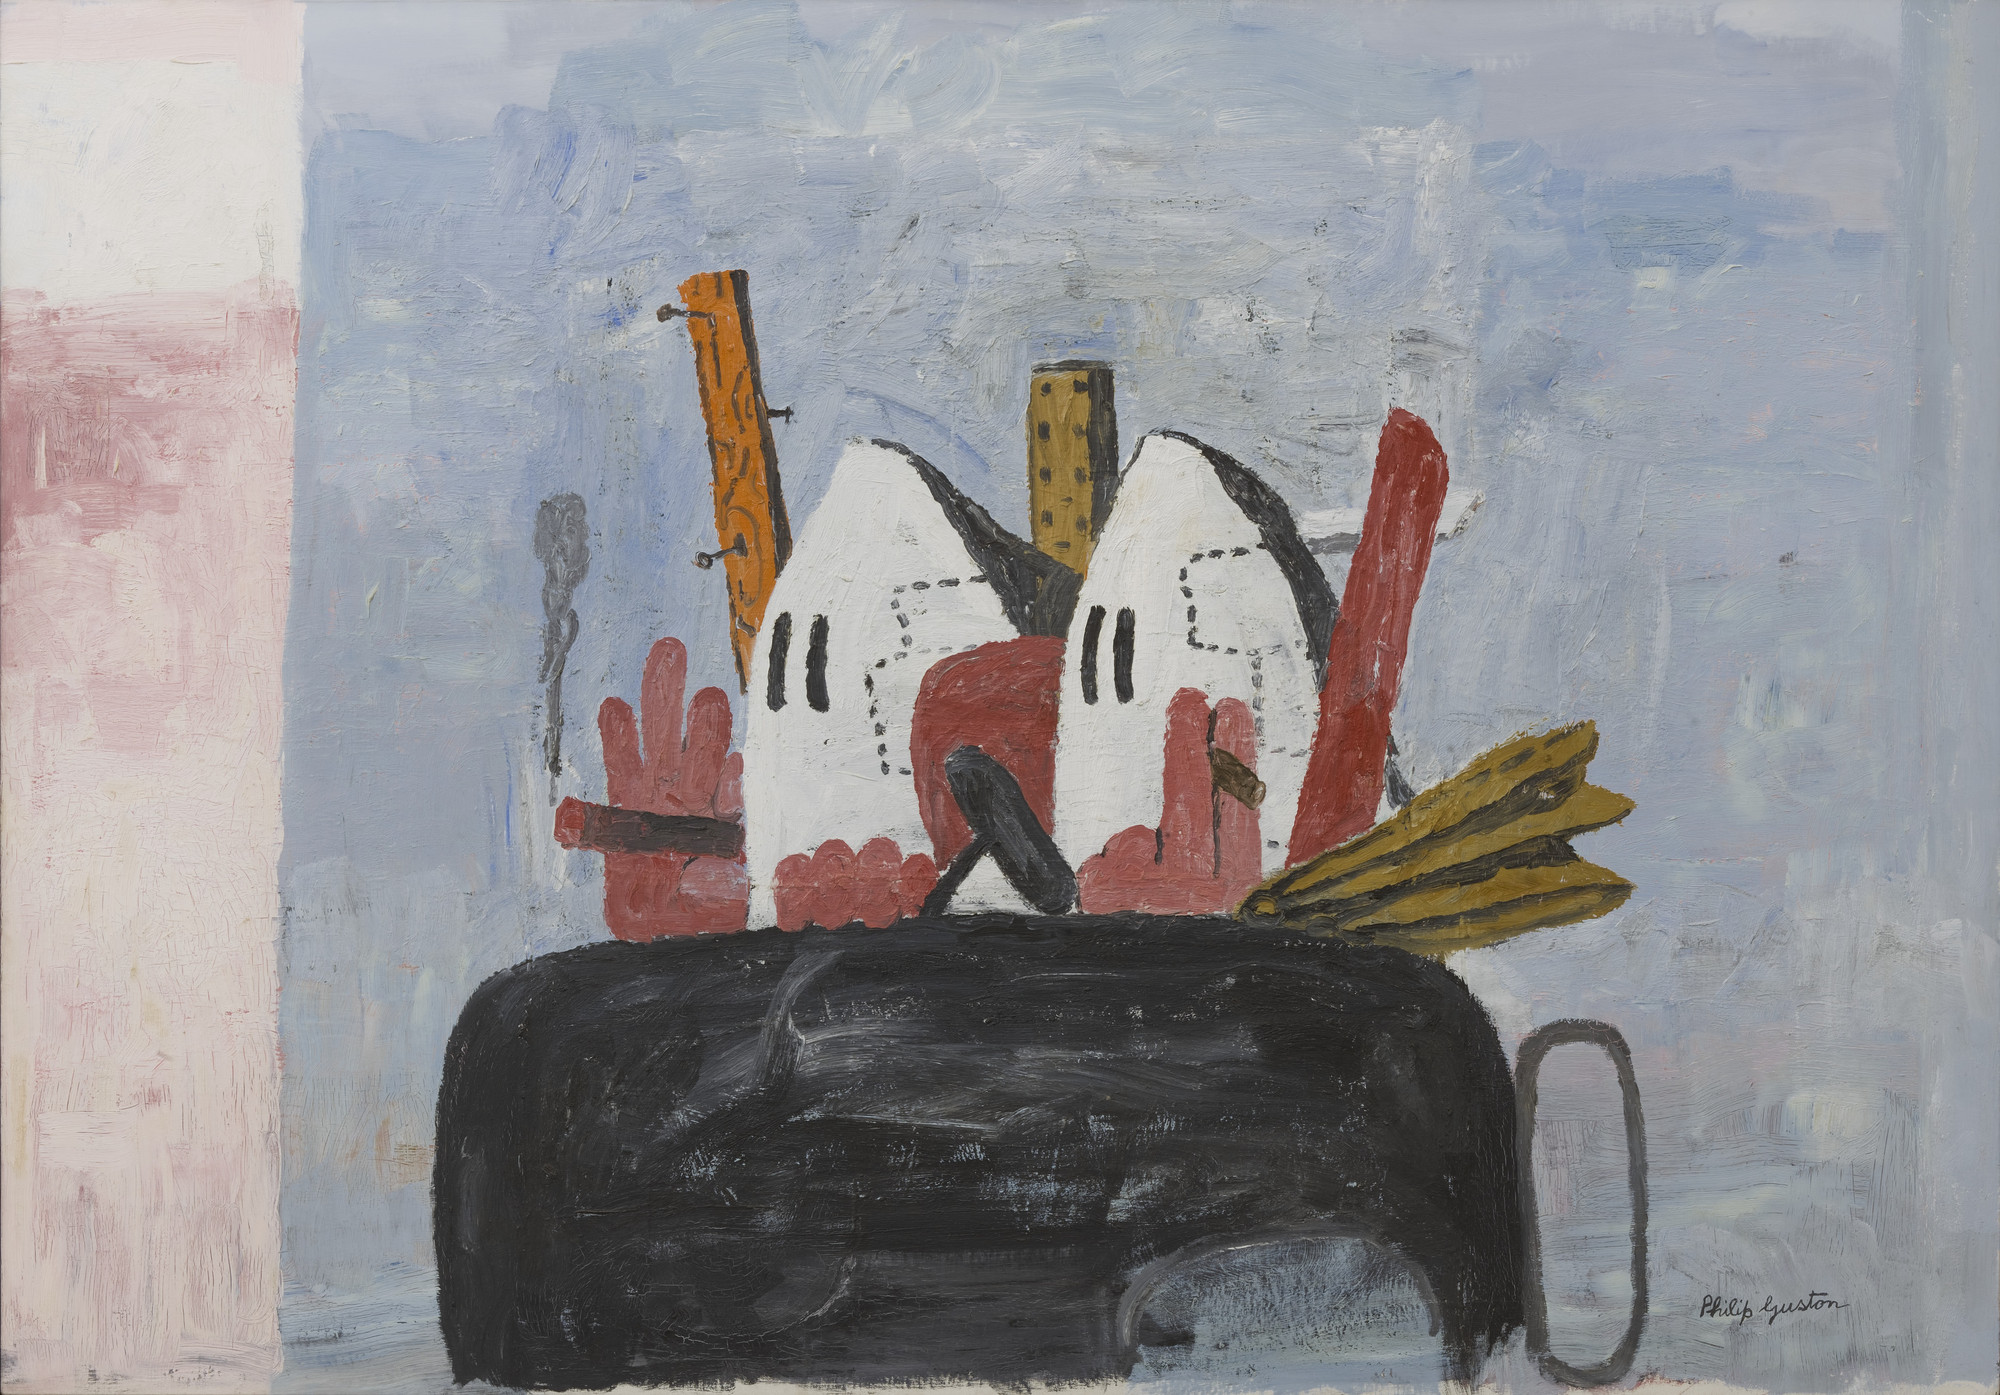 Philip Guston. Edge of Town. 1969